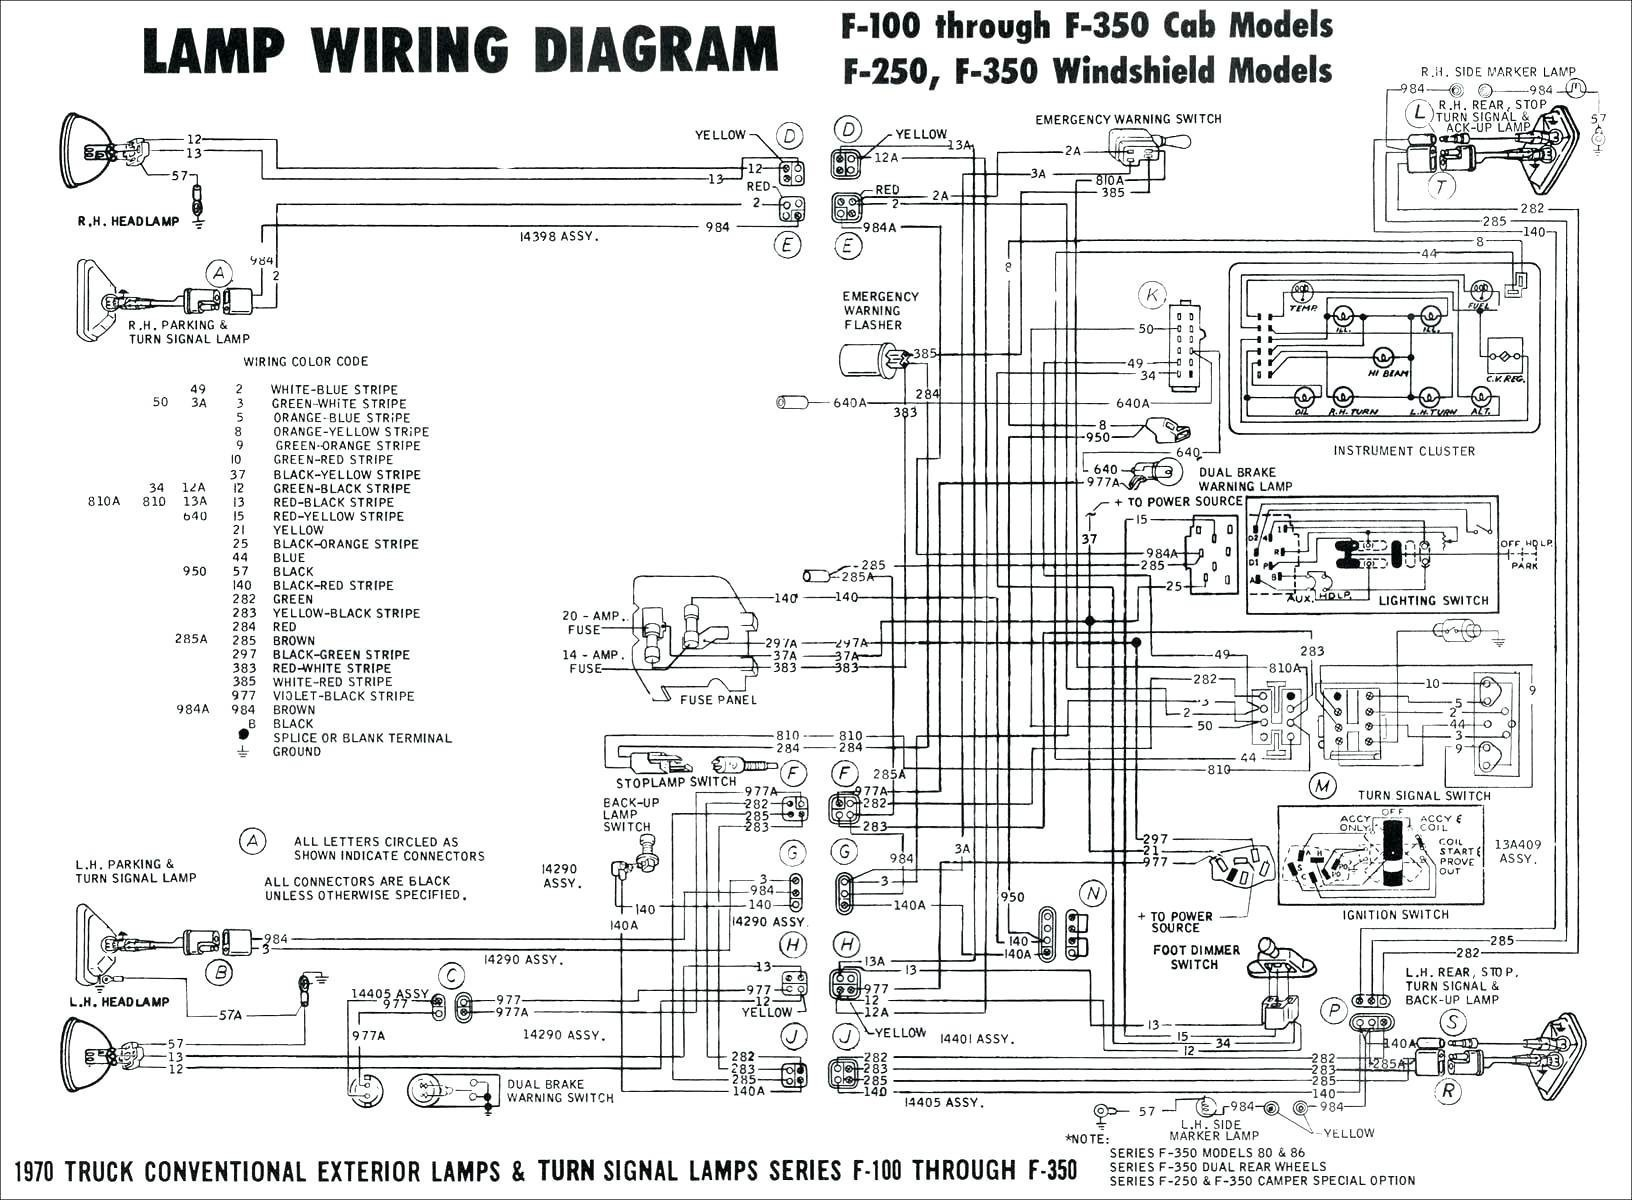 Mercruiser Pump Diagram Manual Of Wiring A Water Oildyne Trim Sample Rh Instinctjax Com